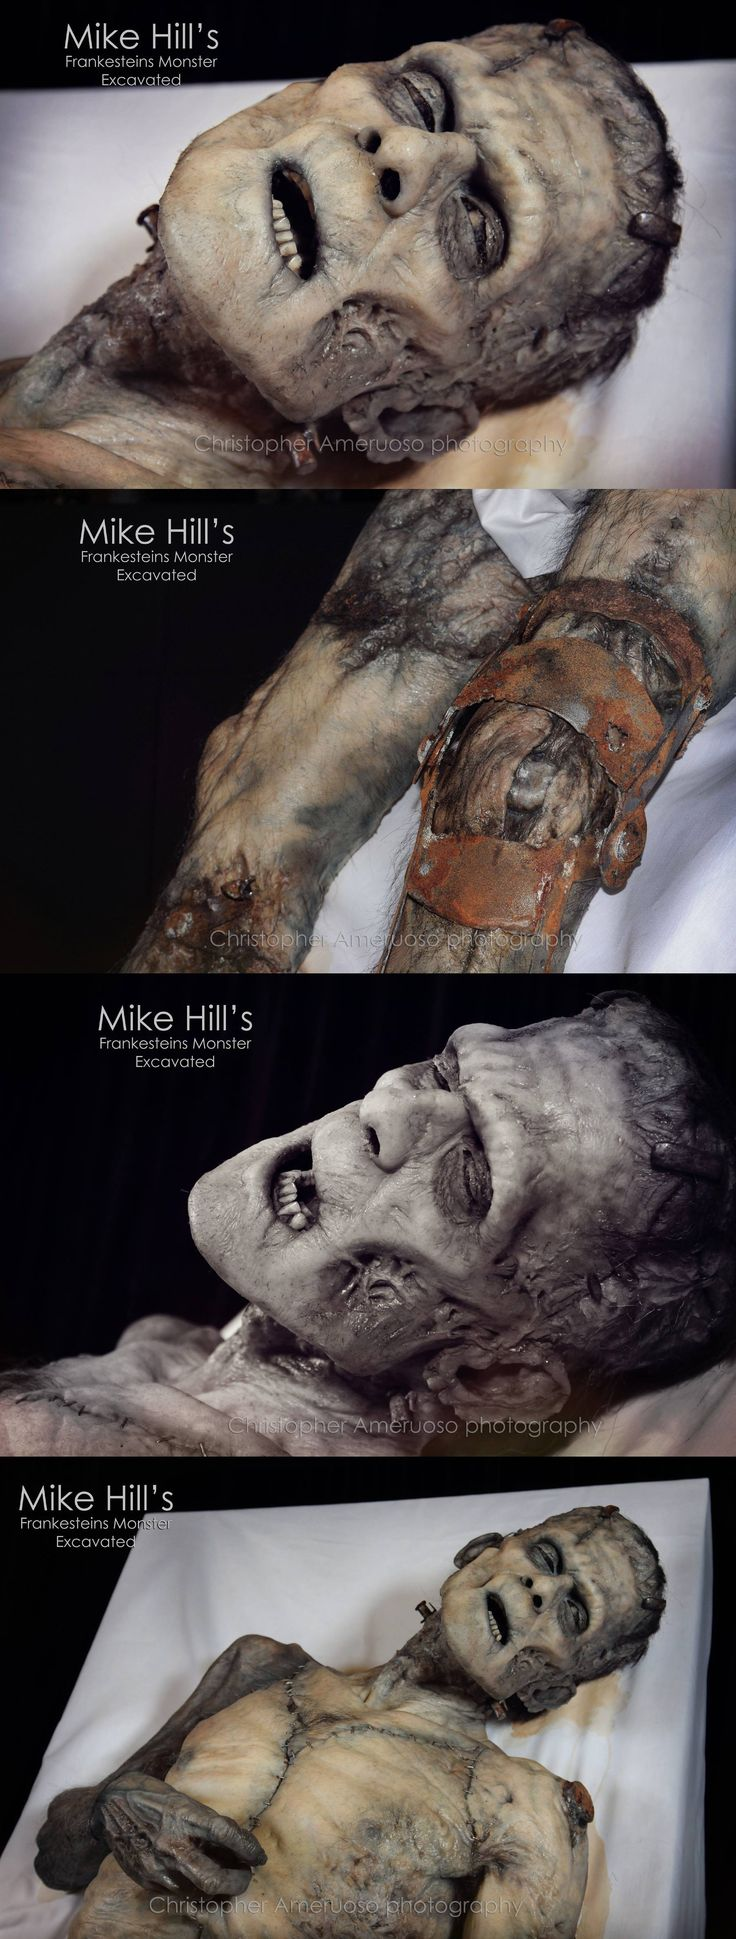 "Monsterpalooza 2014. Mike Hill's amazing ""Frankenstein's Monster Excavated""."